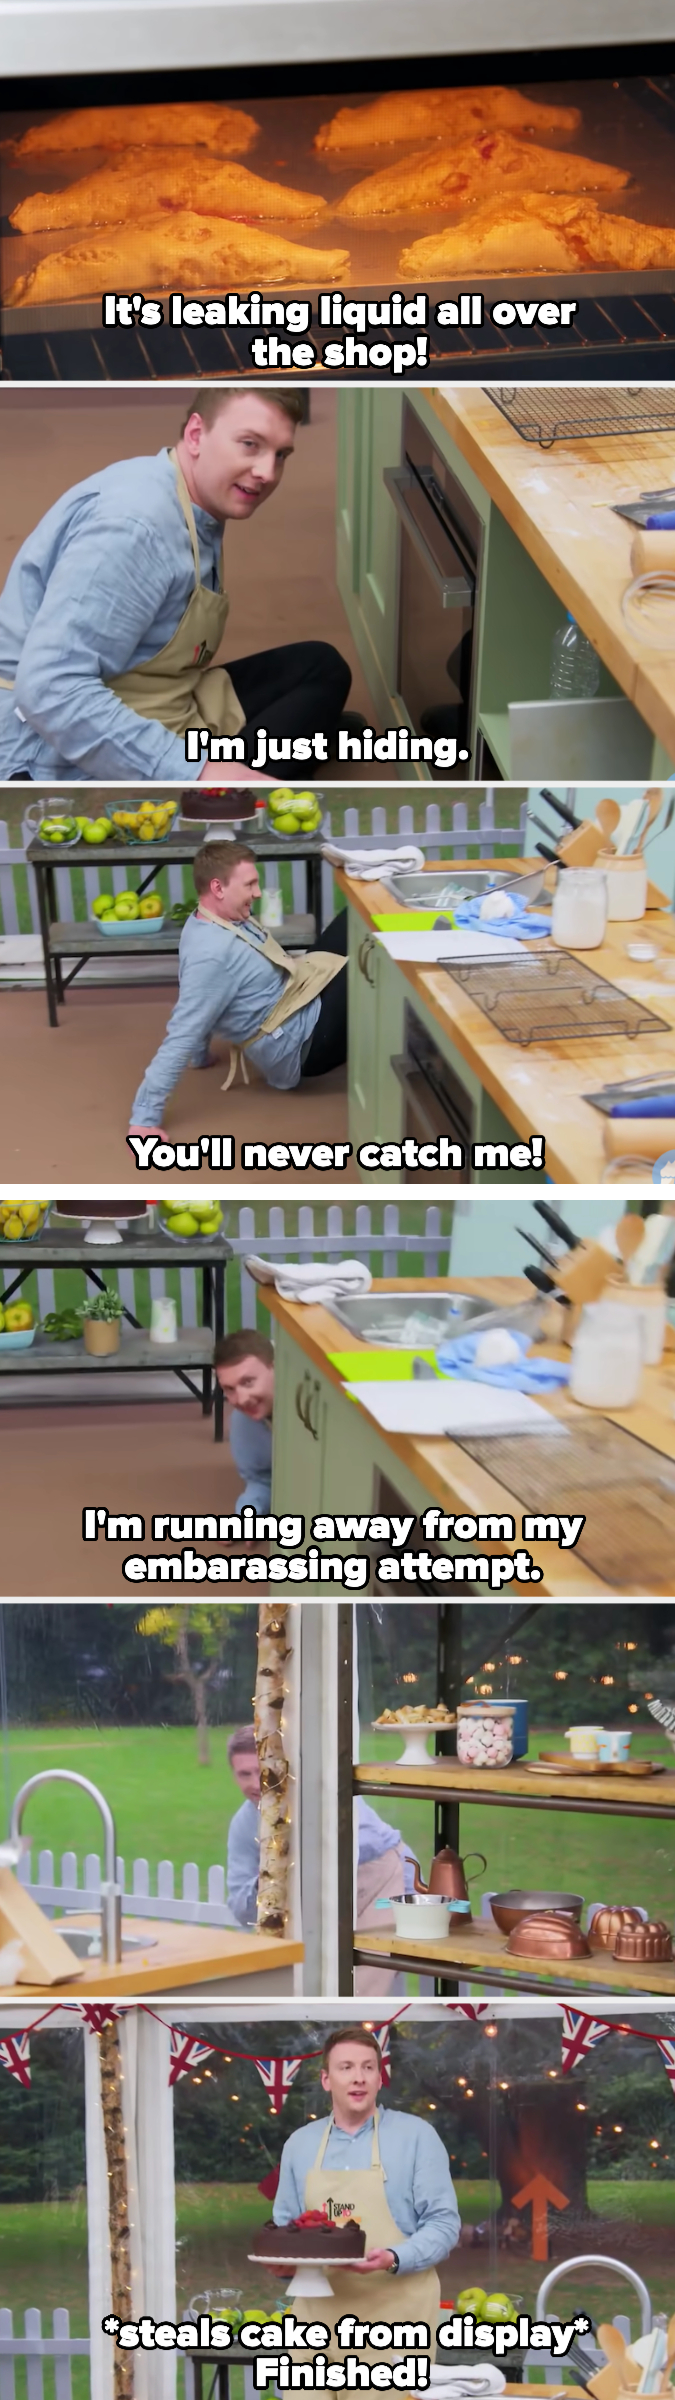 Joe runs from the cameraman then steals a cake from the display